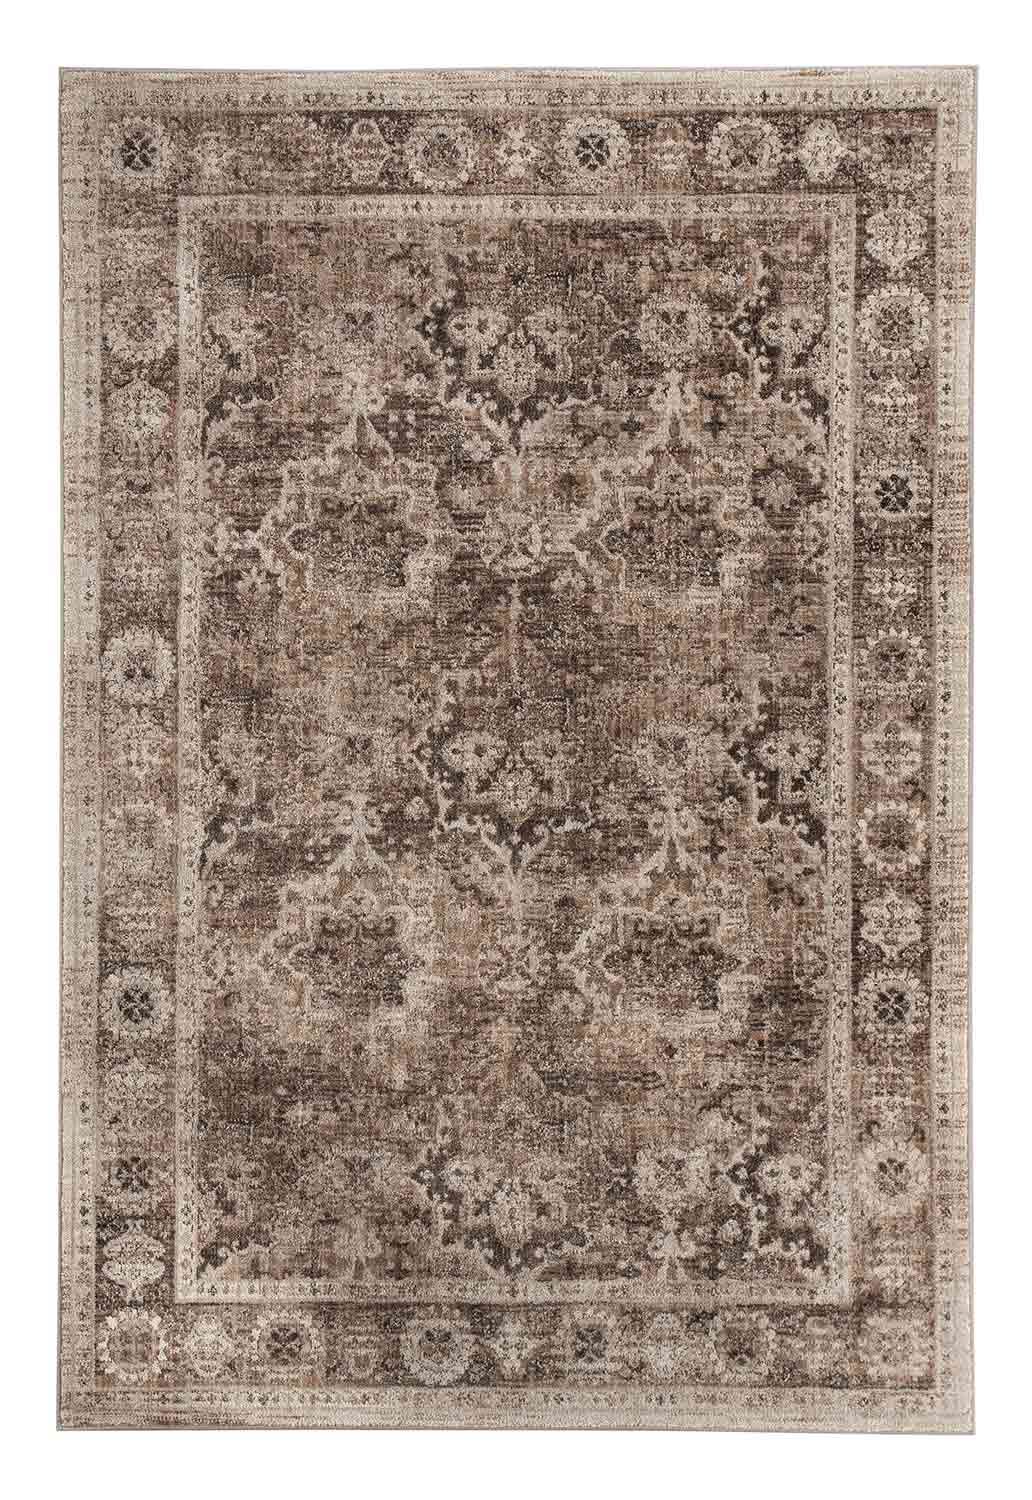 Ashley Geovanni Large Rug - Stone/Taupe